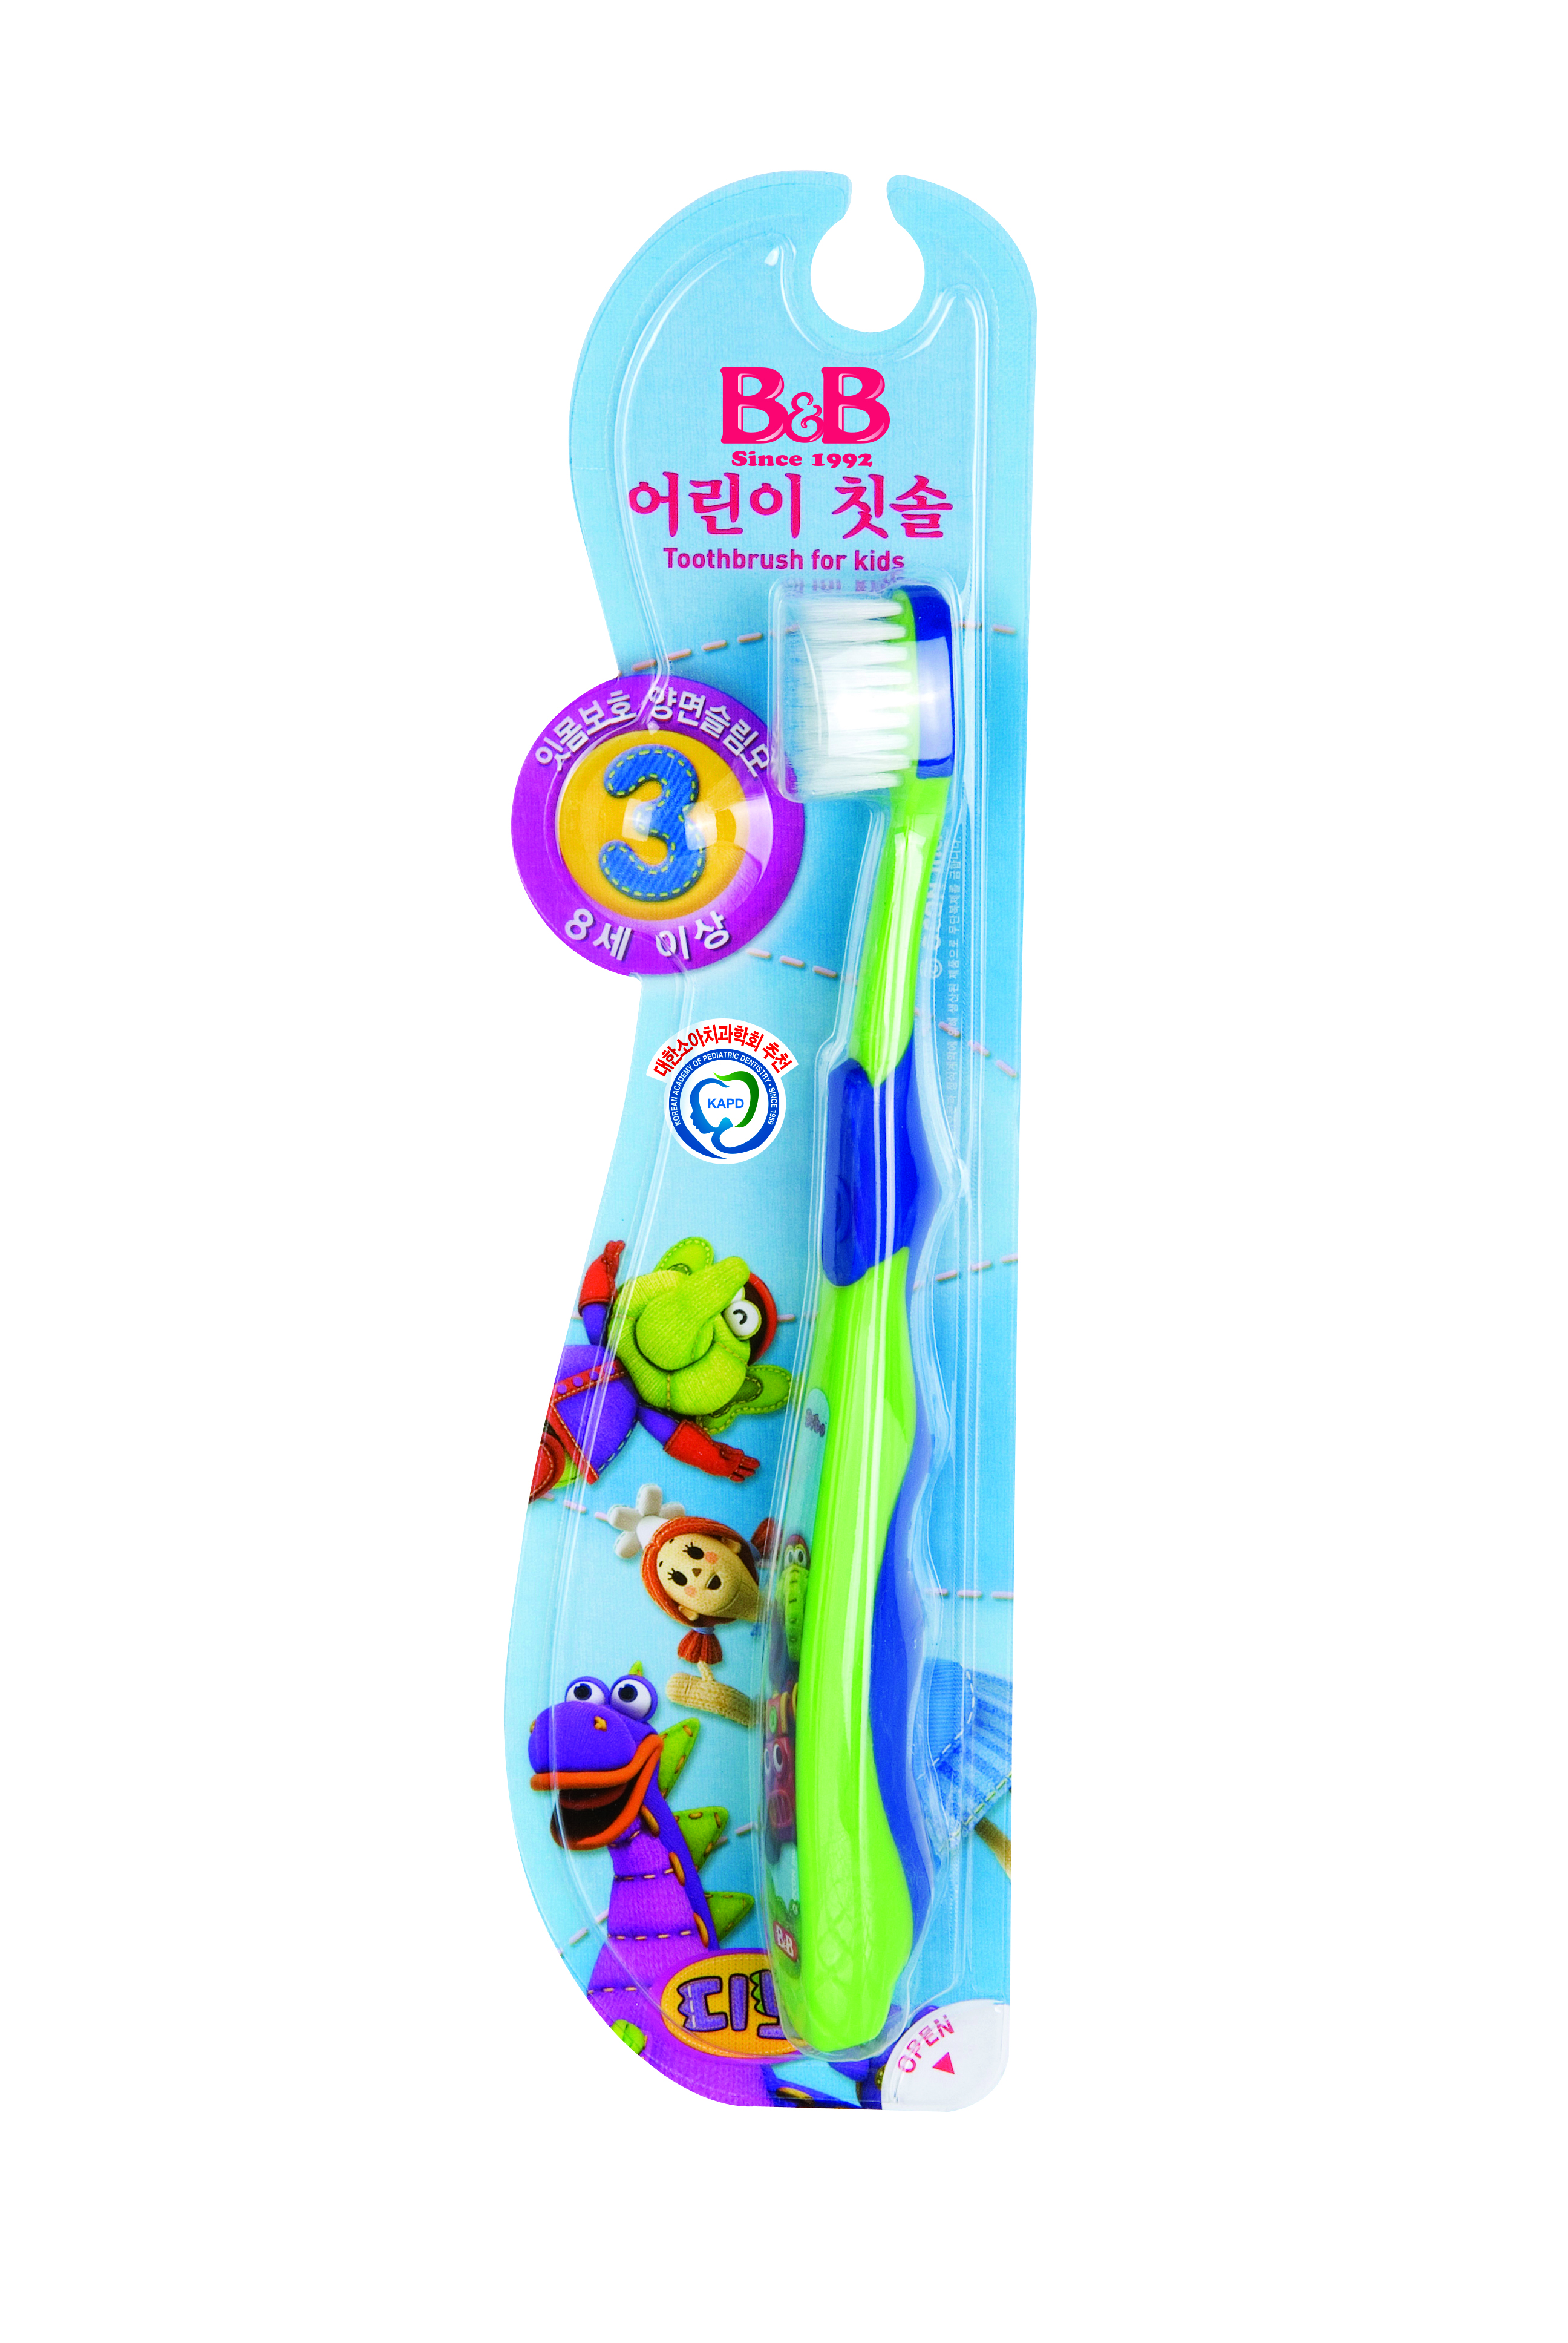 B&B Toothbrush, Kid Toothbrush